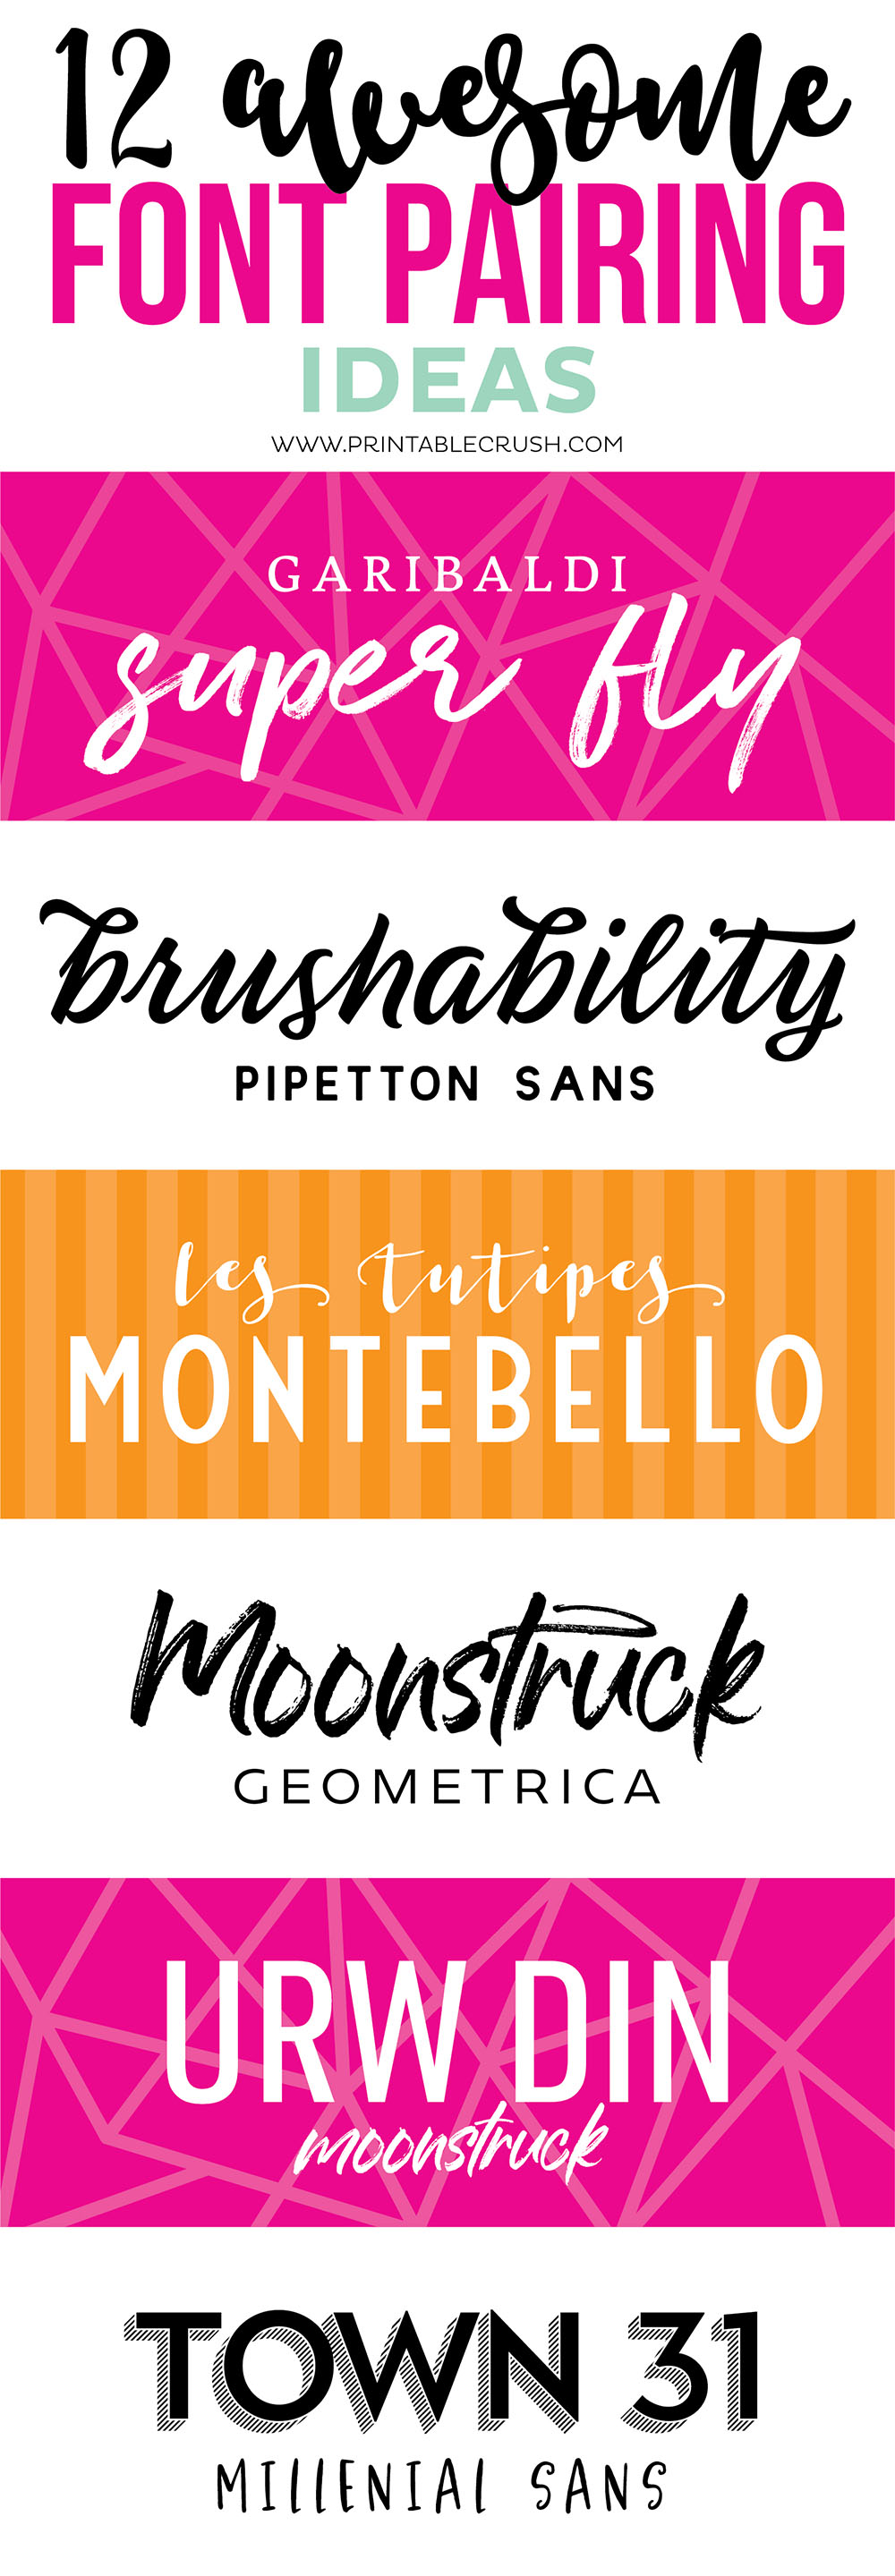 Pin collage for font paring